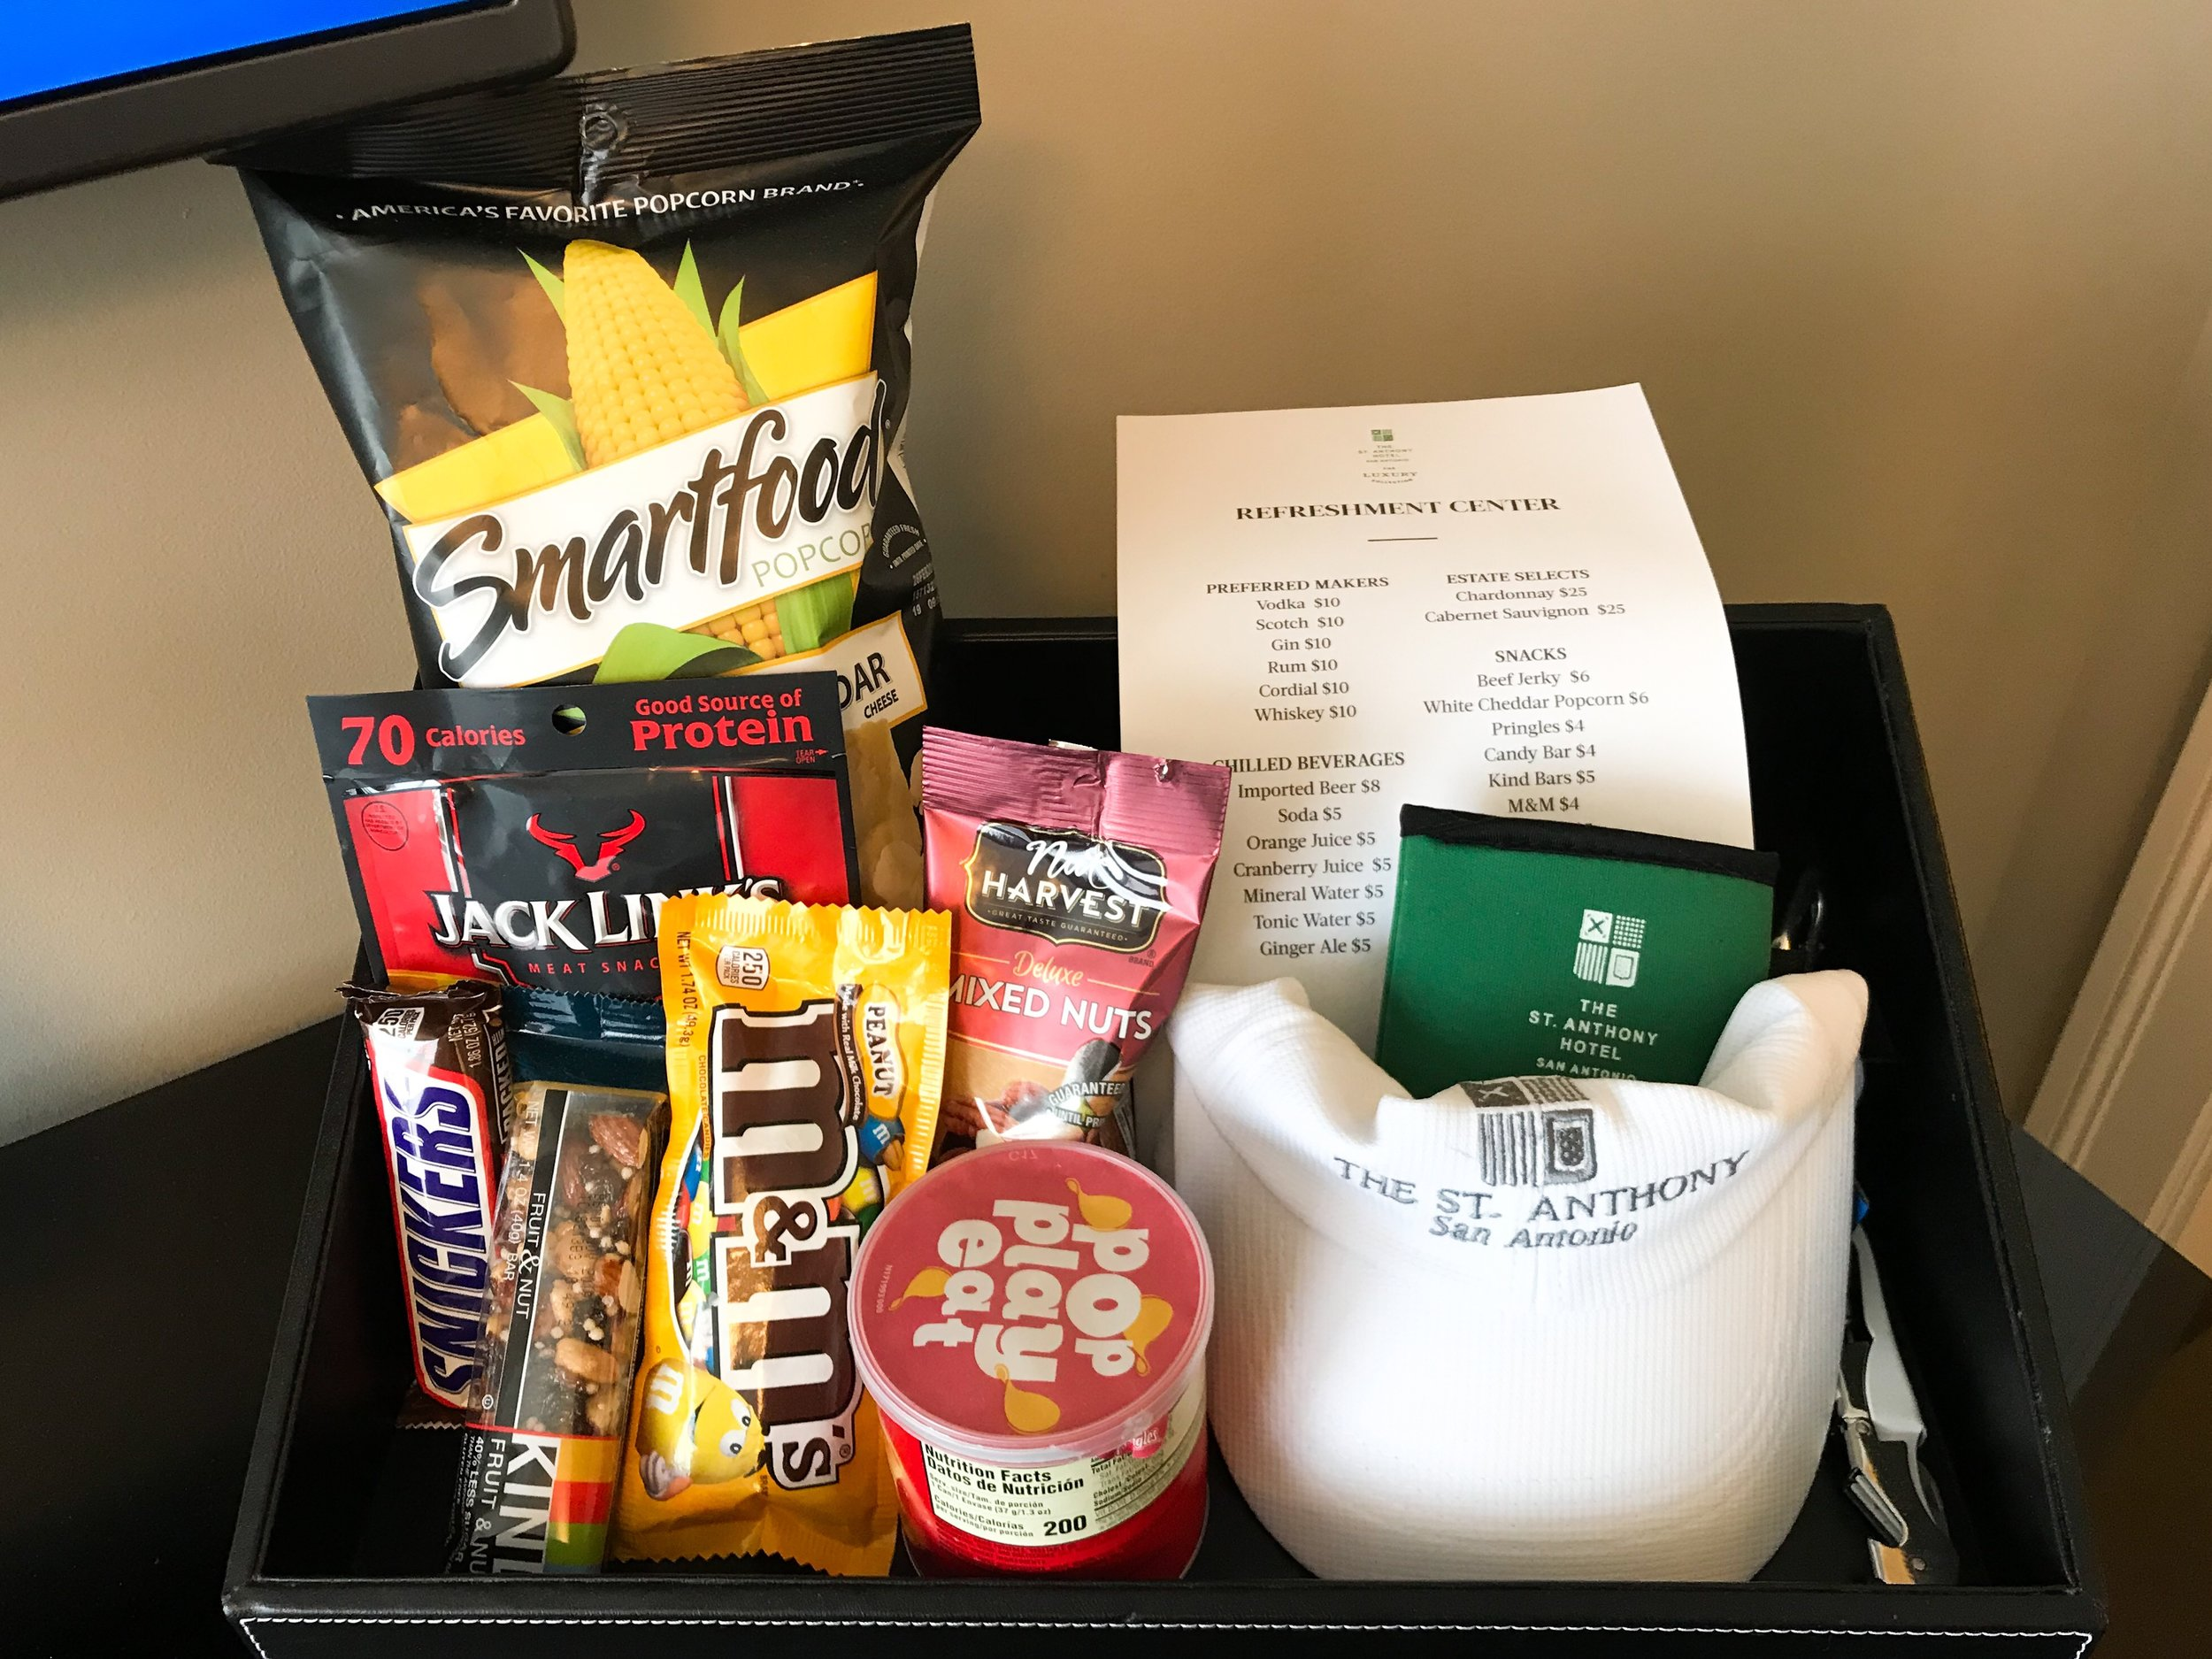 There was a small snack bar in the room.